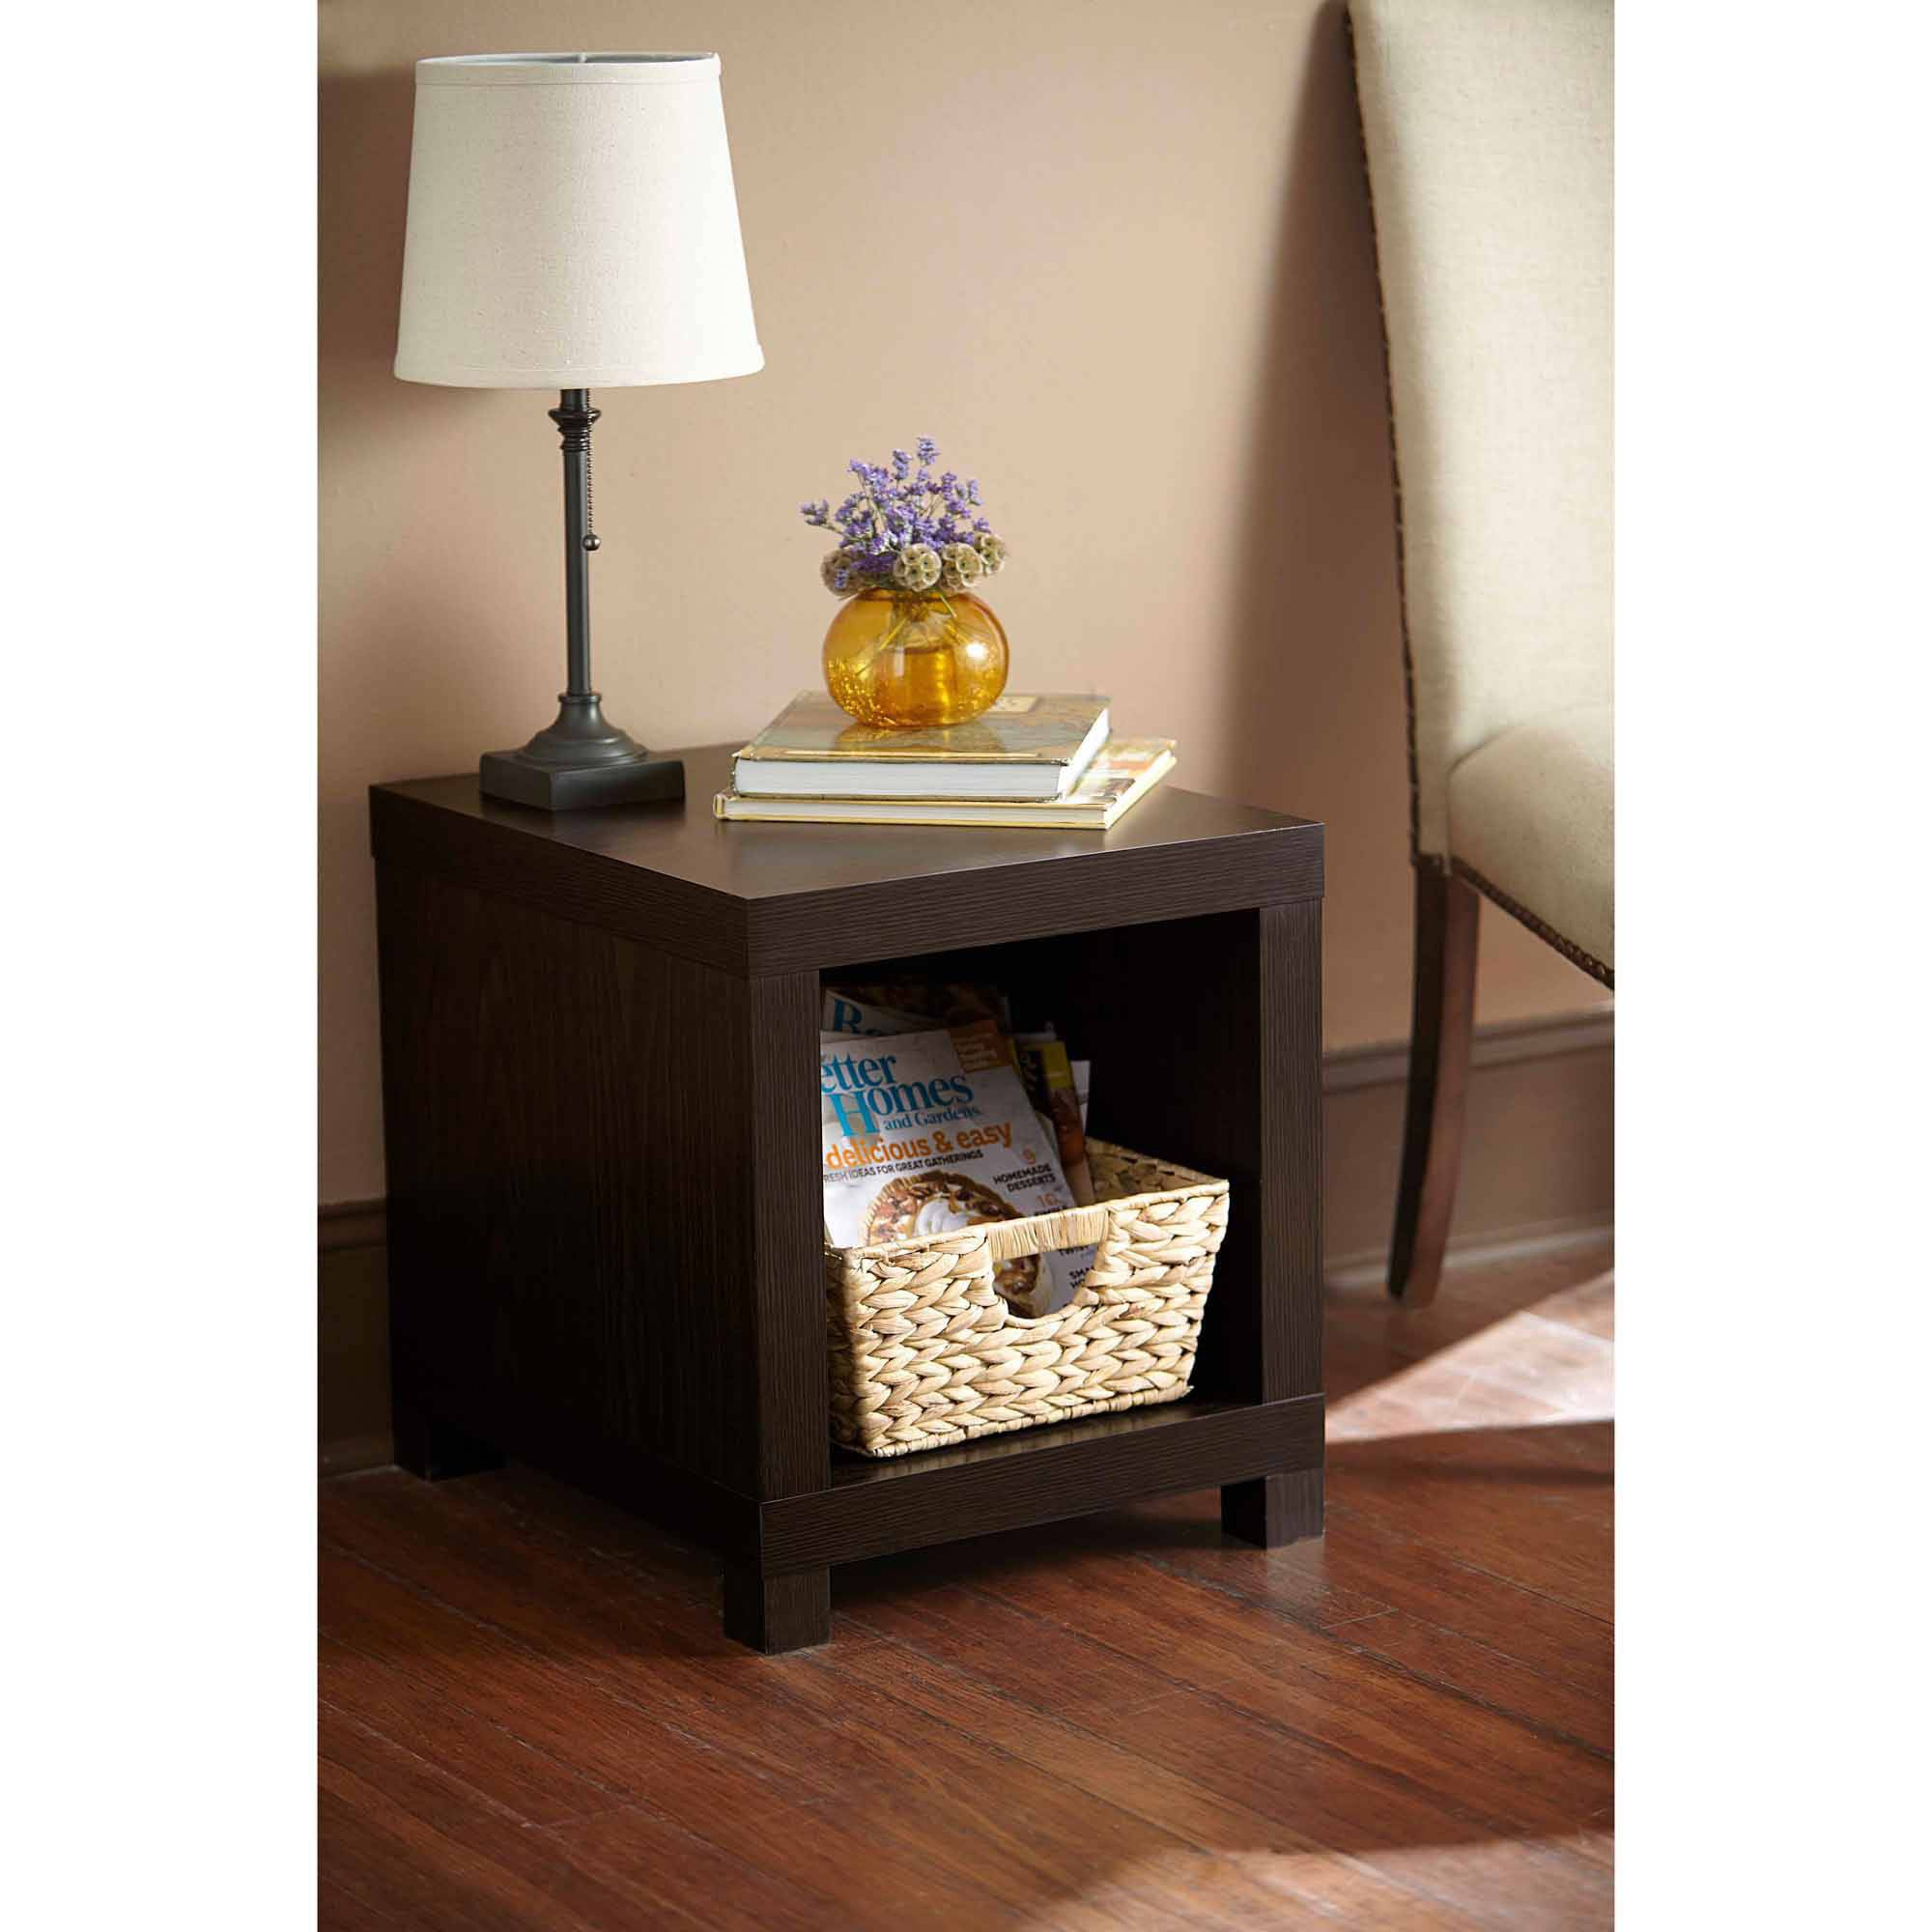 better homes gardens accent table multiple colors end tables small white coffee making legs drum set cymbals black marble knotty pine bookcase fitted vinyl nic covers modern wood